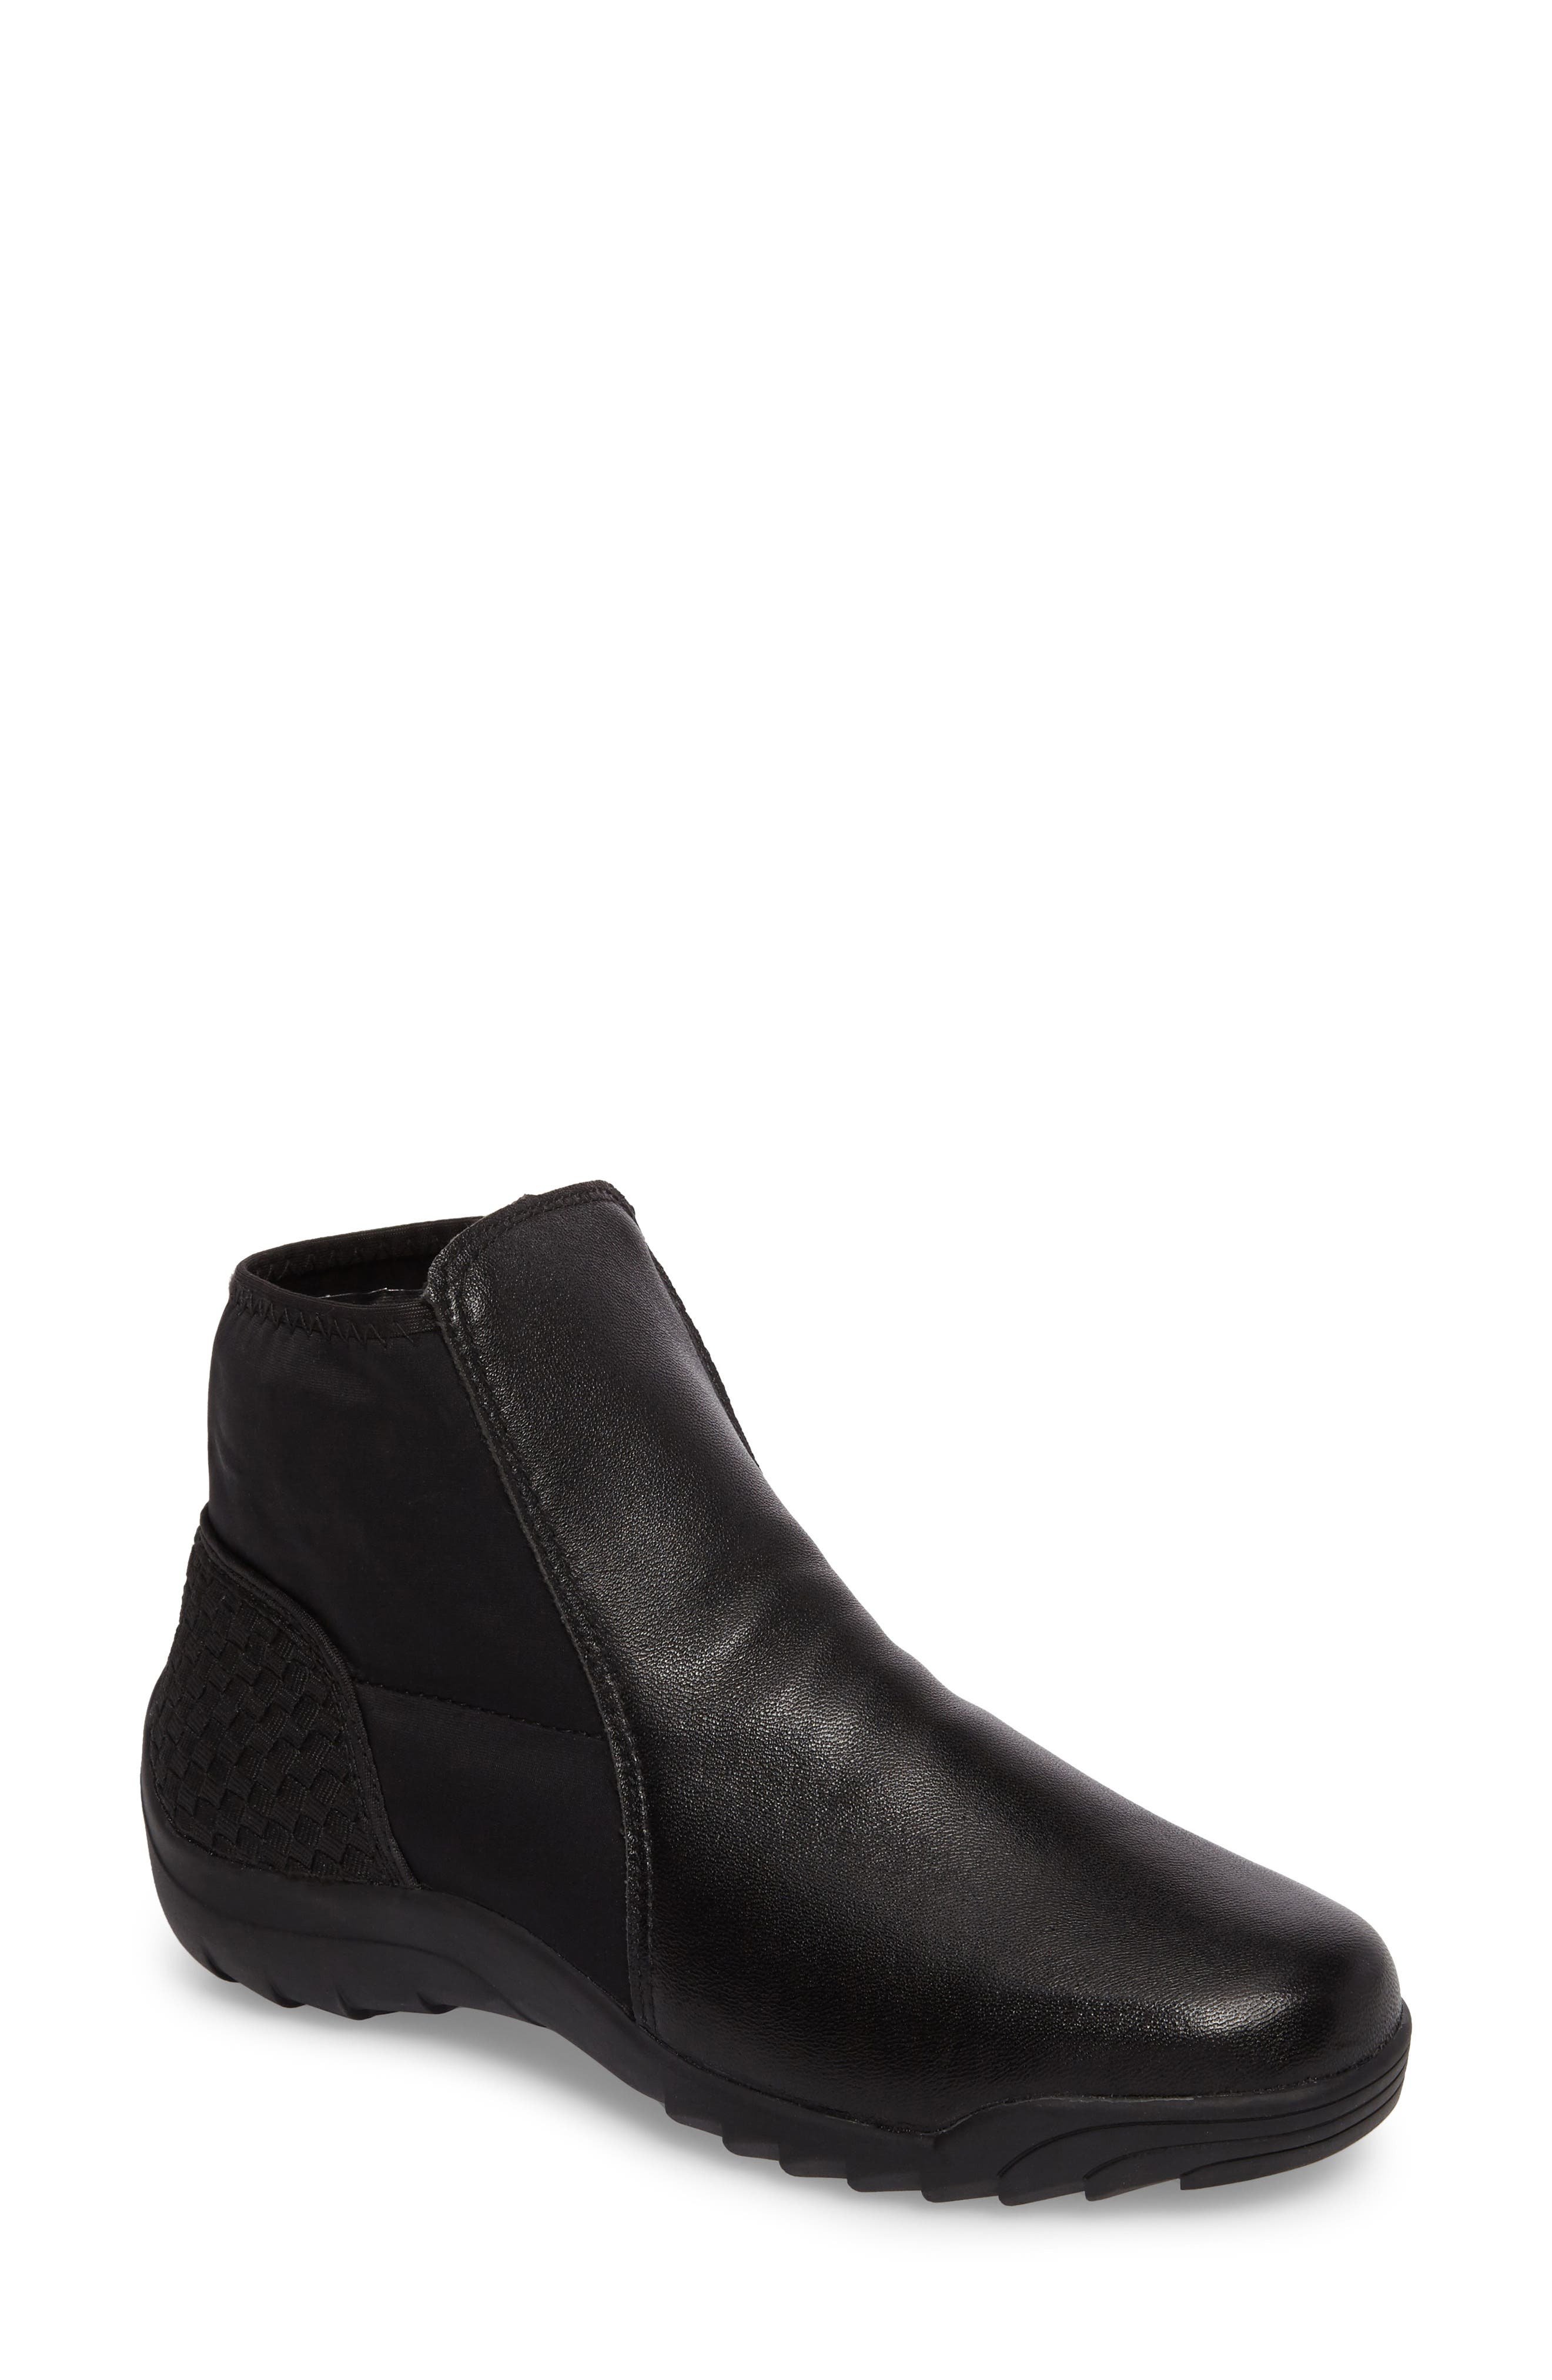 Rigged Force Sneaker,                         Main,                         color, BLACK LEATHER